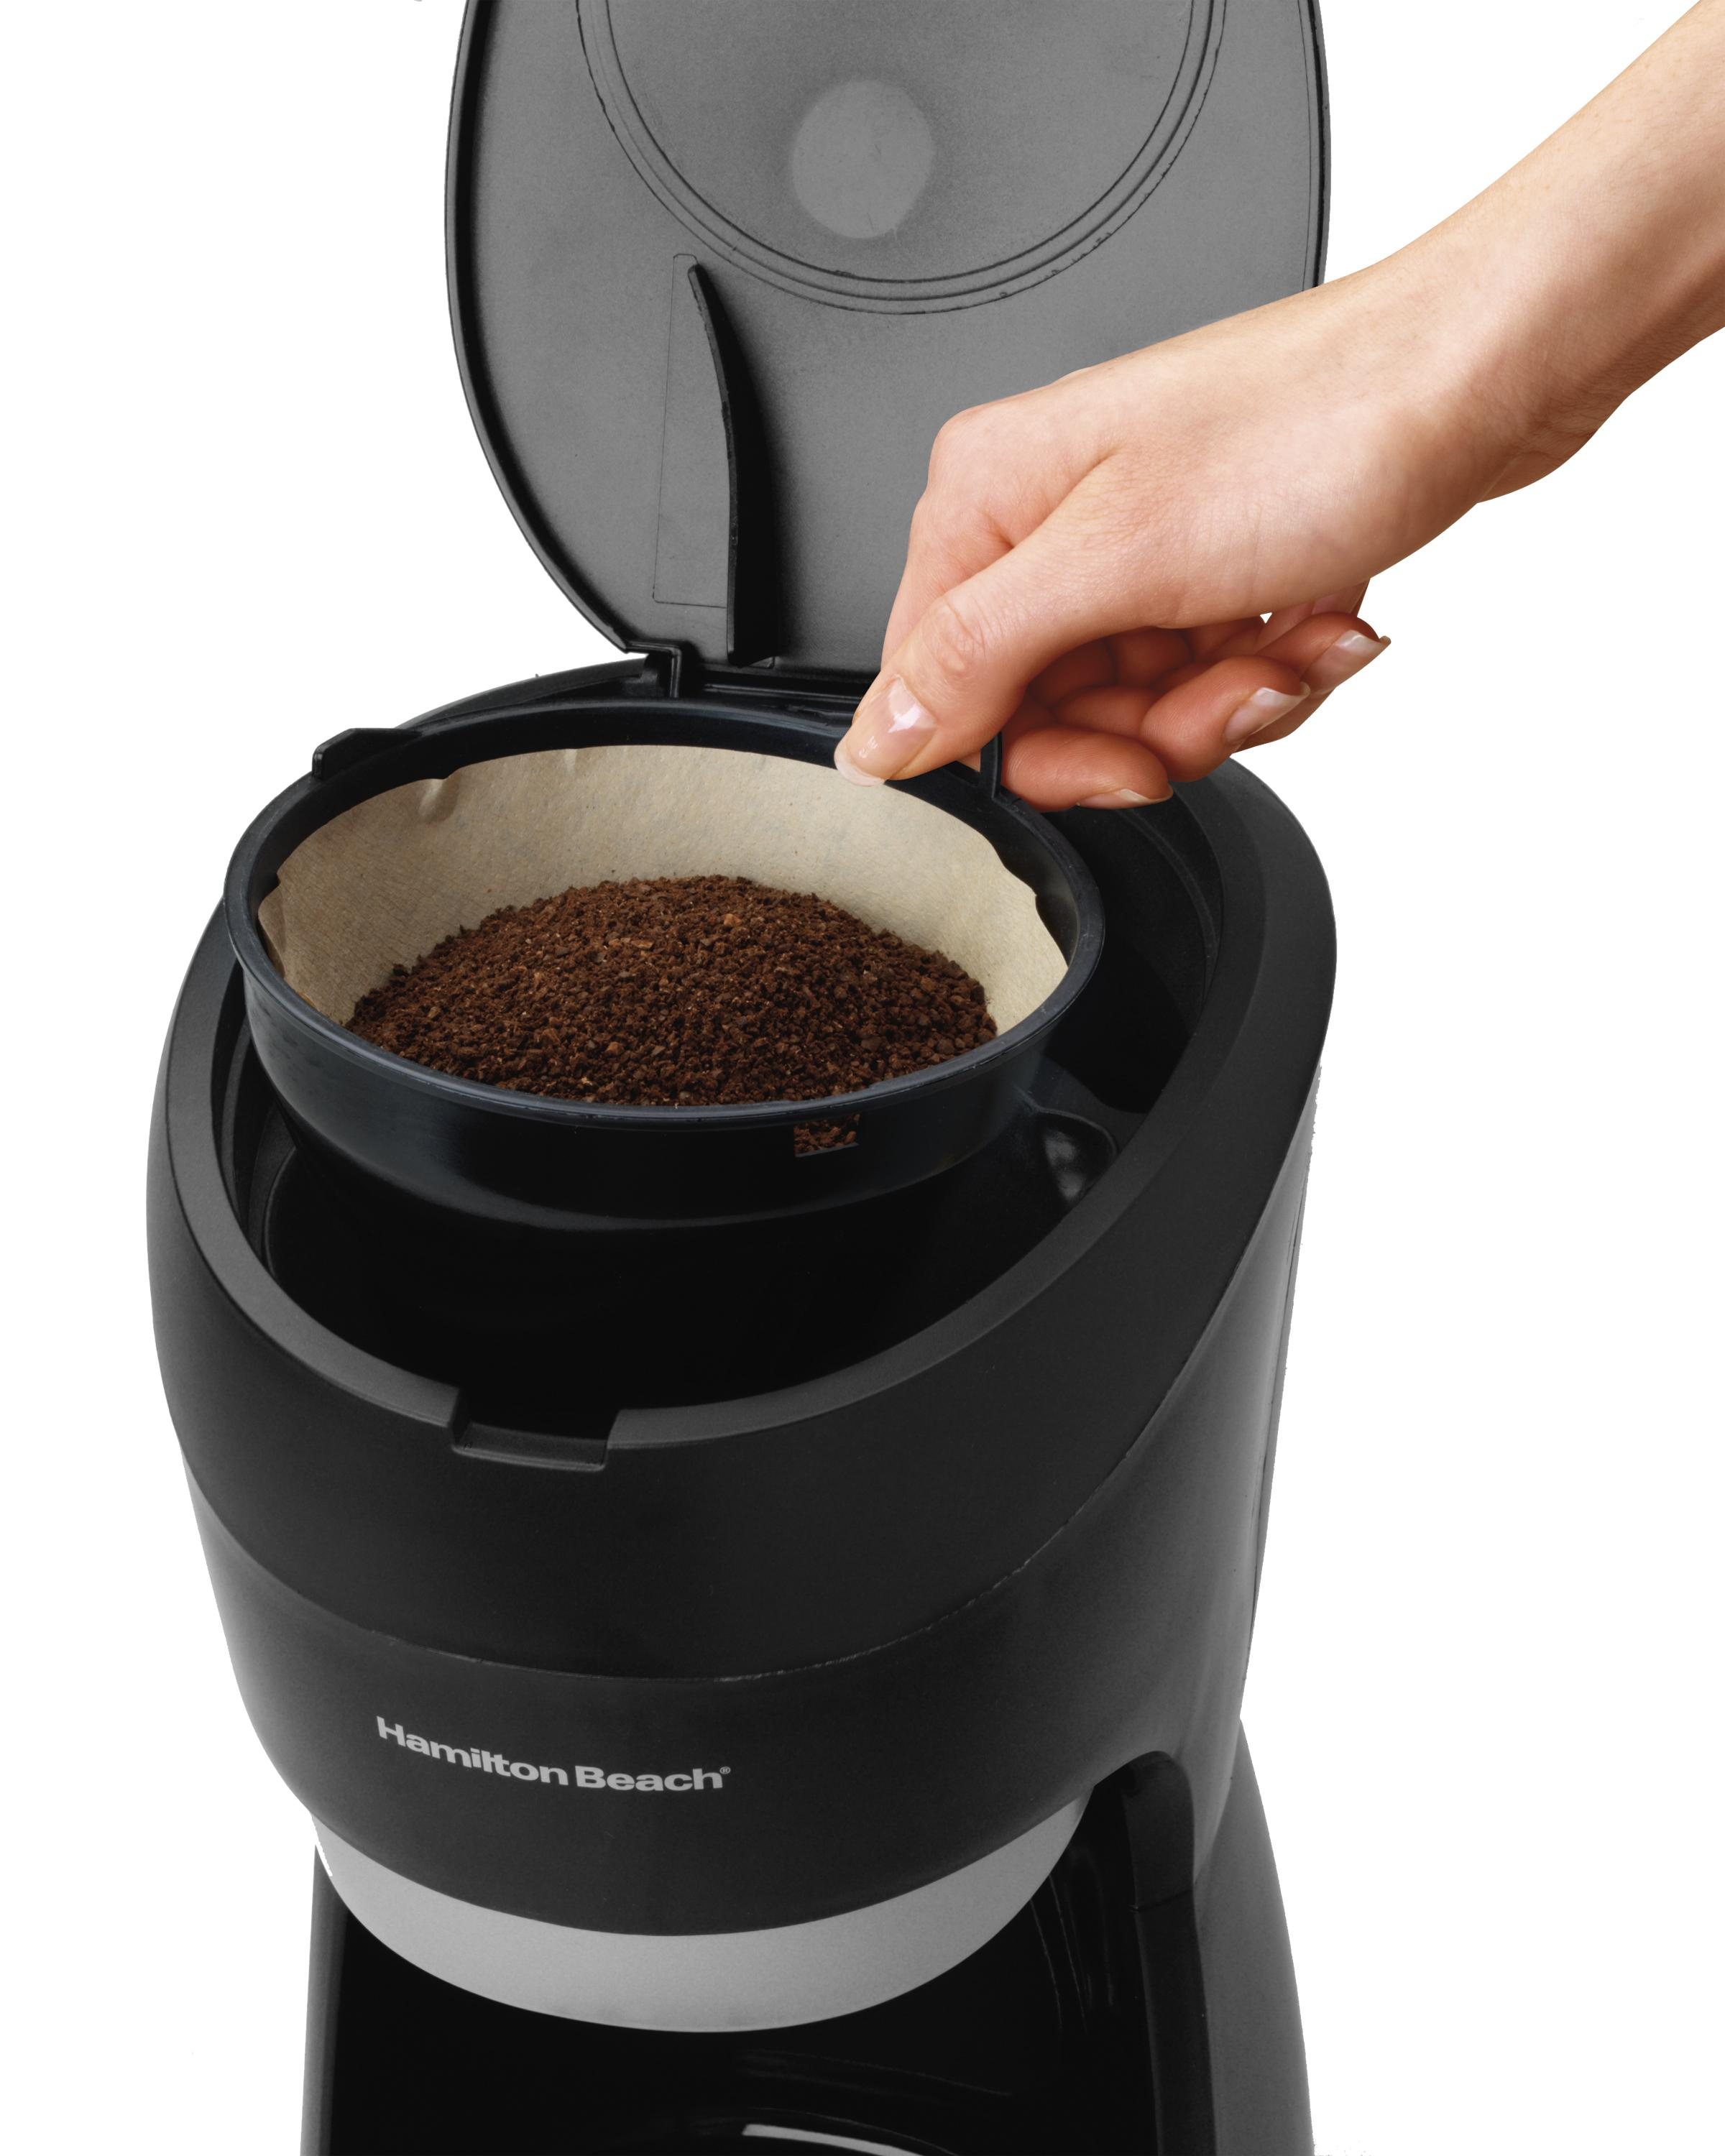 Bunn Coffee Maker Cleaner : Clean Bunn Coffee Makers How To Clean A Bunn Coffee Pot Share The Knownledge